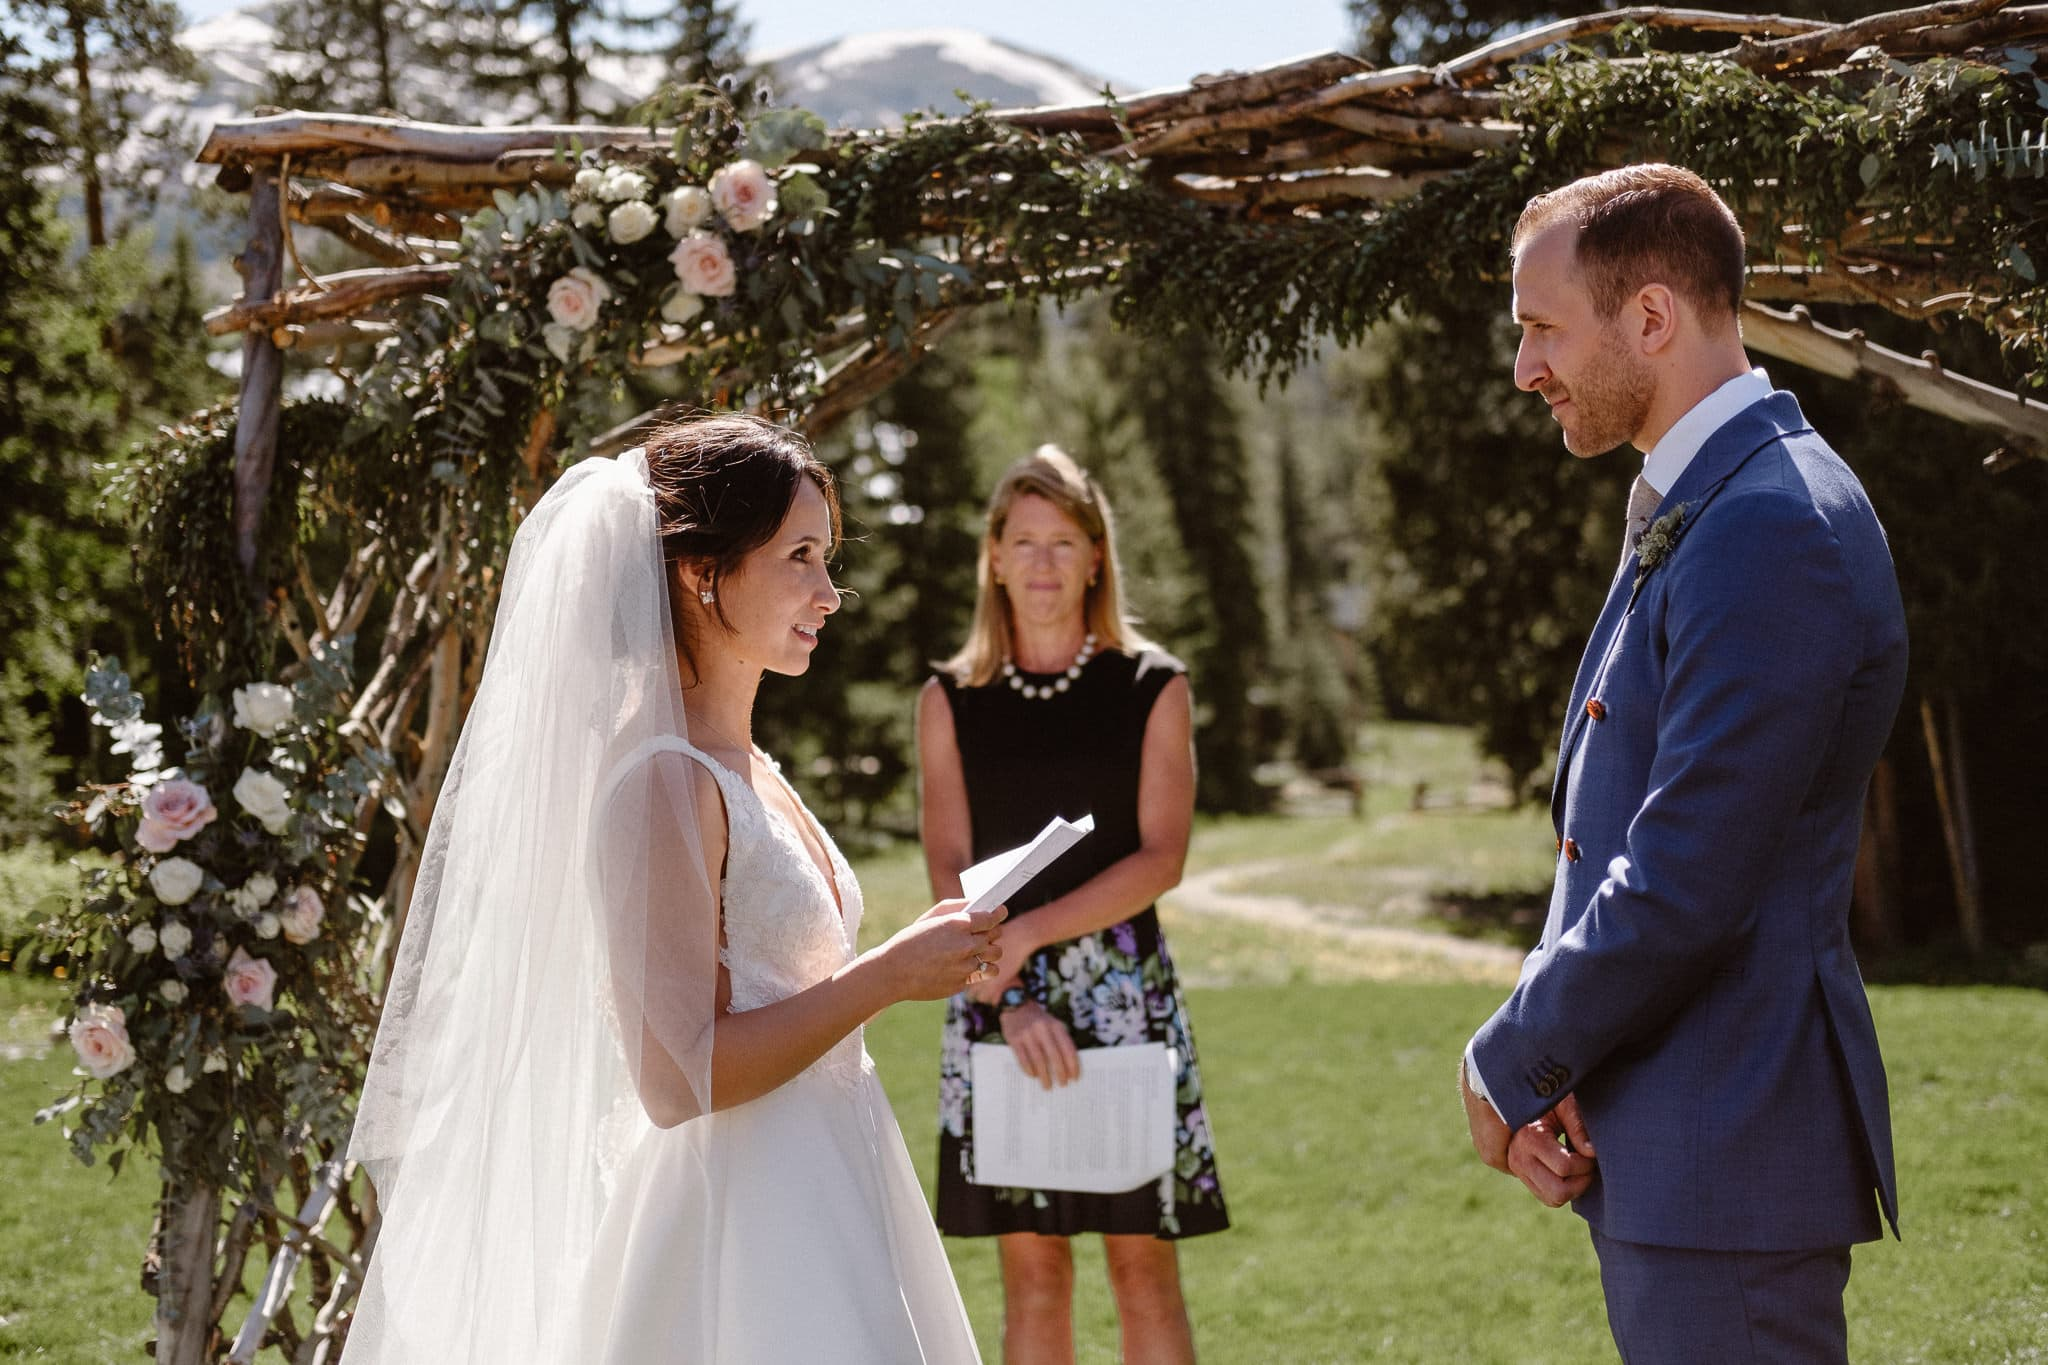 Bride and groom exchanging vows at Breckenridge Nordic Center wedding venue, outdoor log cabin wedding ceremony, Colorado wedding photographer